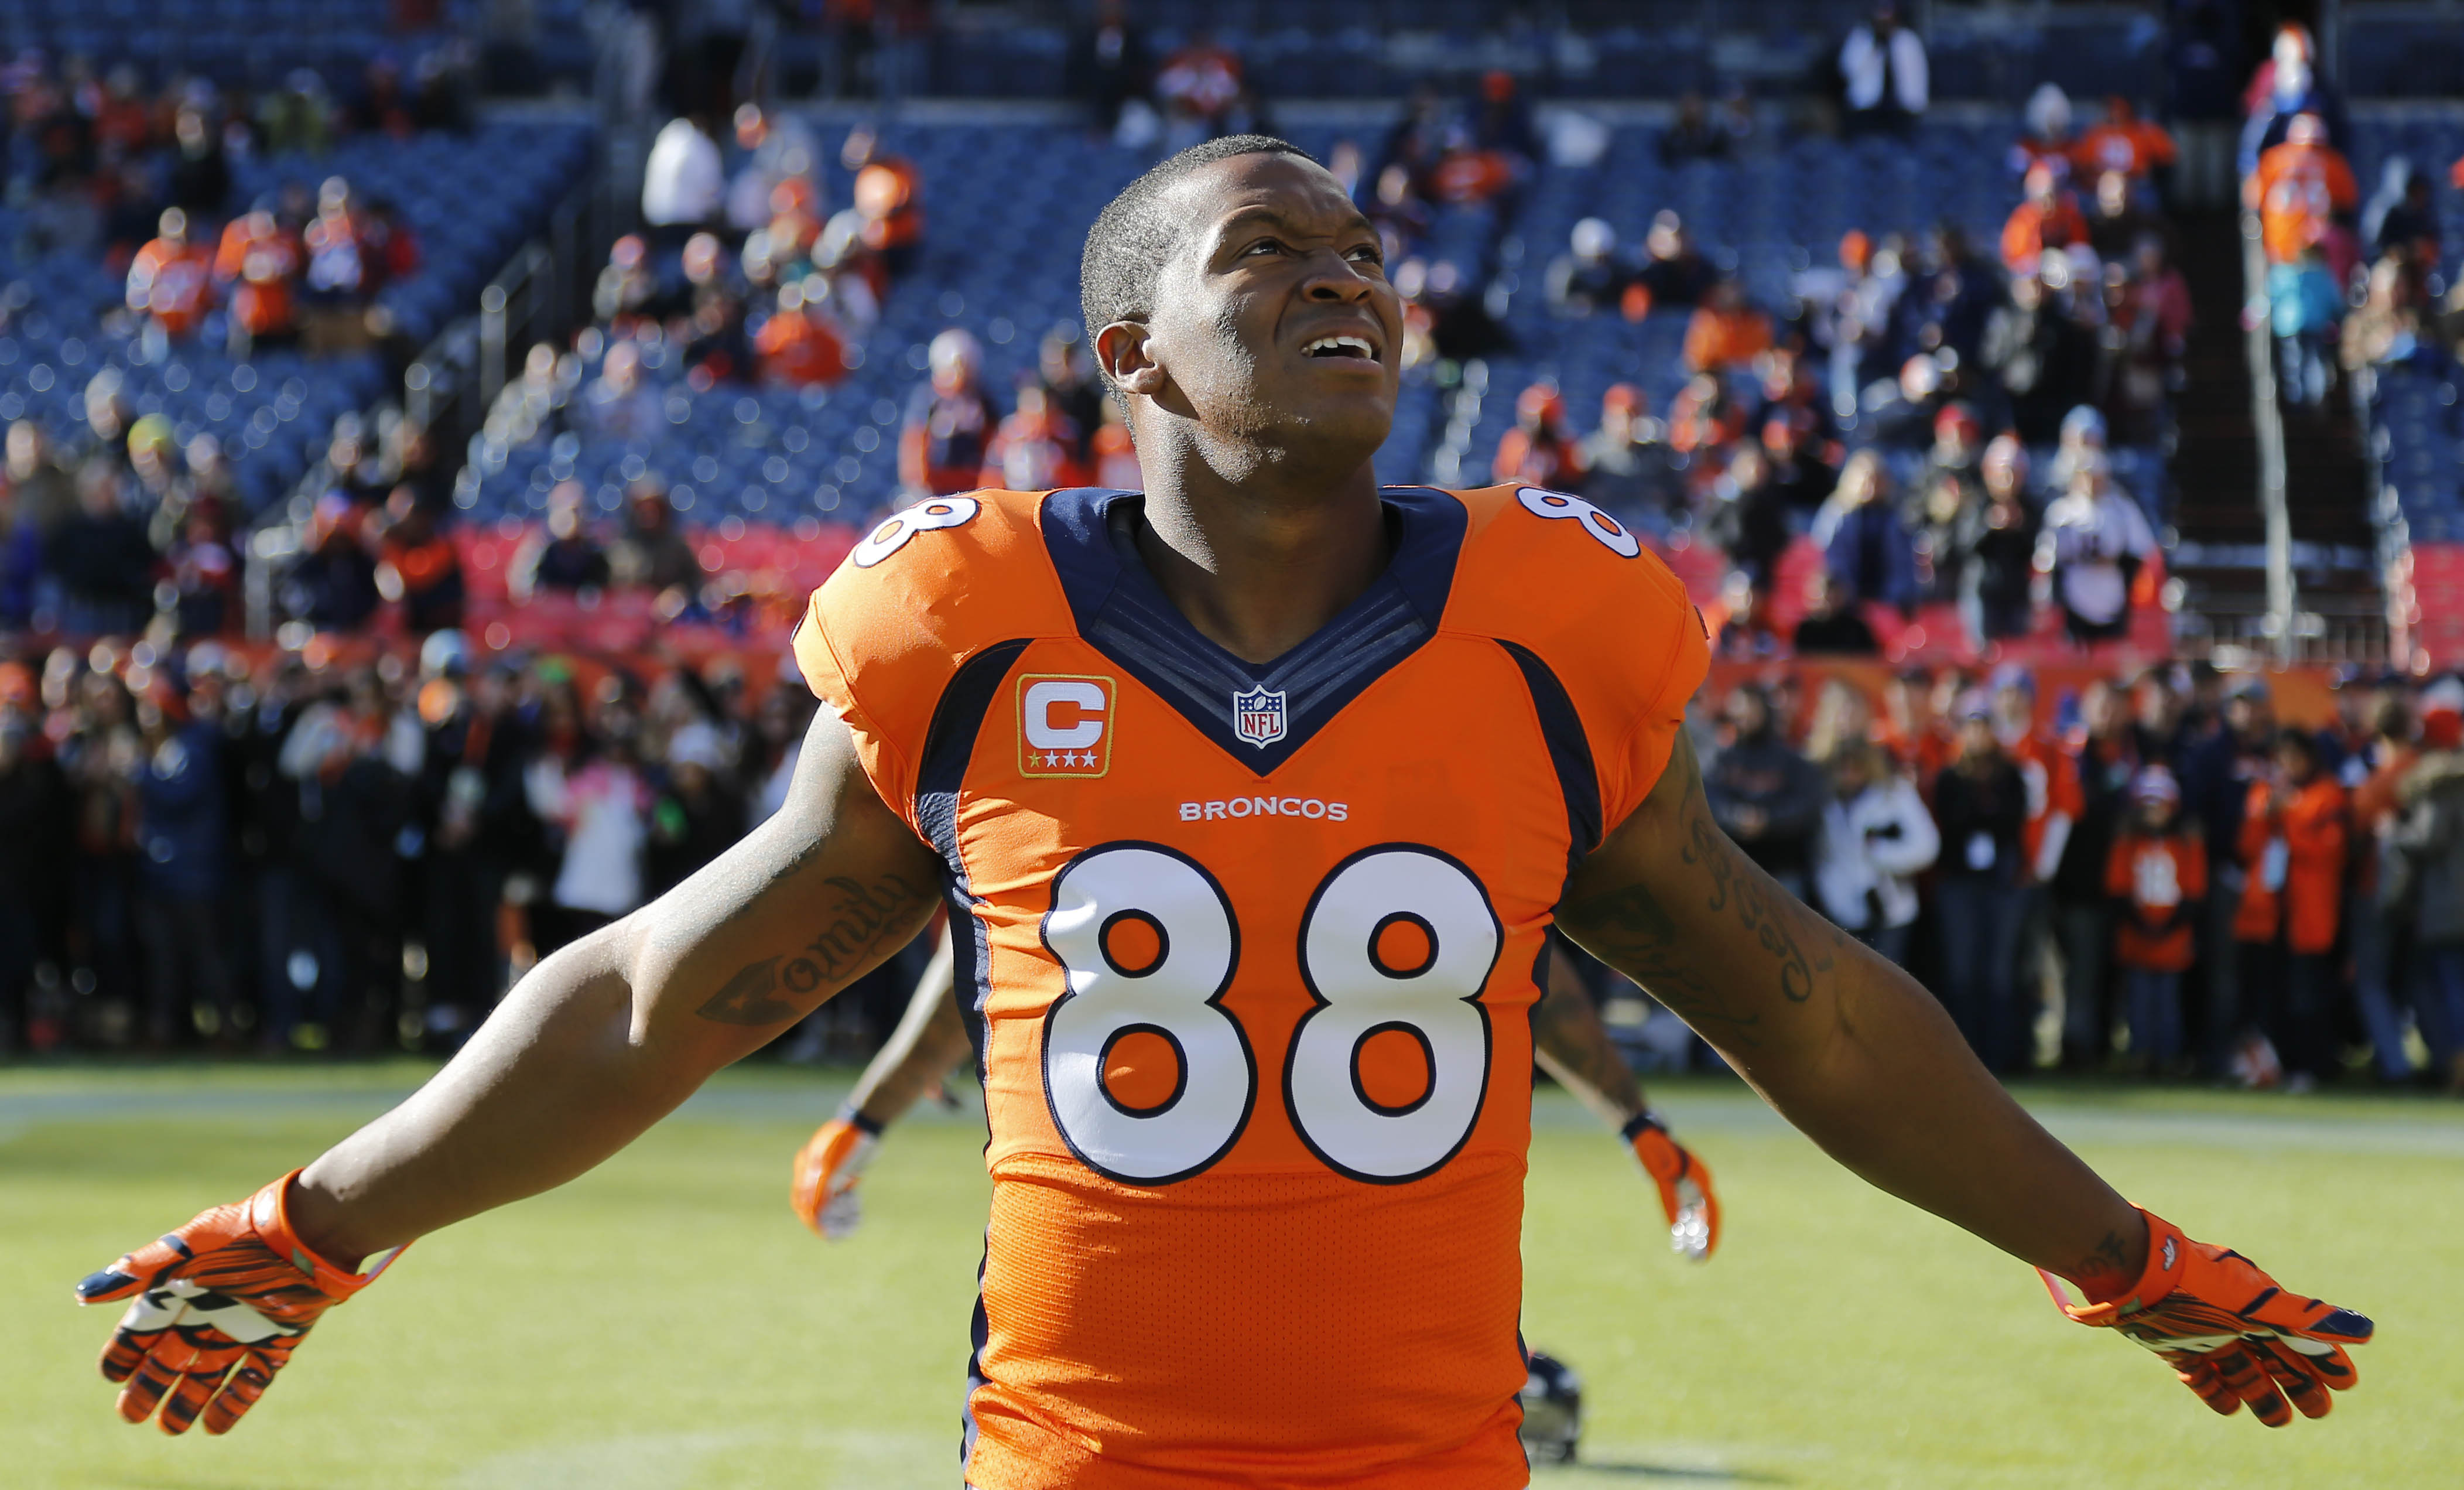 Denver Broncos wide receiver Demaryius Thomas (88) stretches prior to an NFL football game against the Oakland Raiders, Sunday, Dec. 28, 2014, in Denver. (AP Photo/Jack Dempsey)